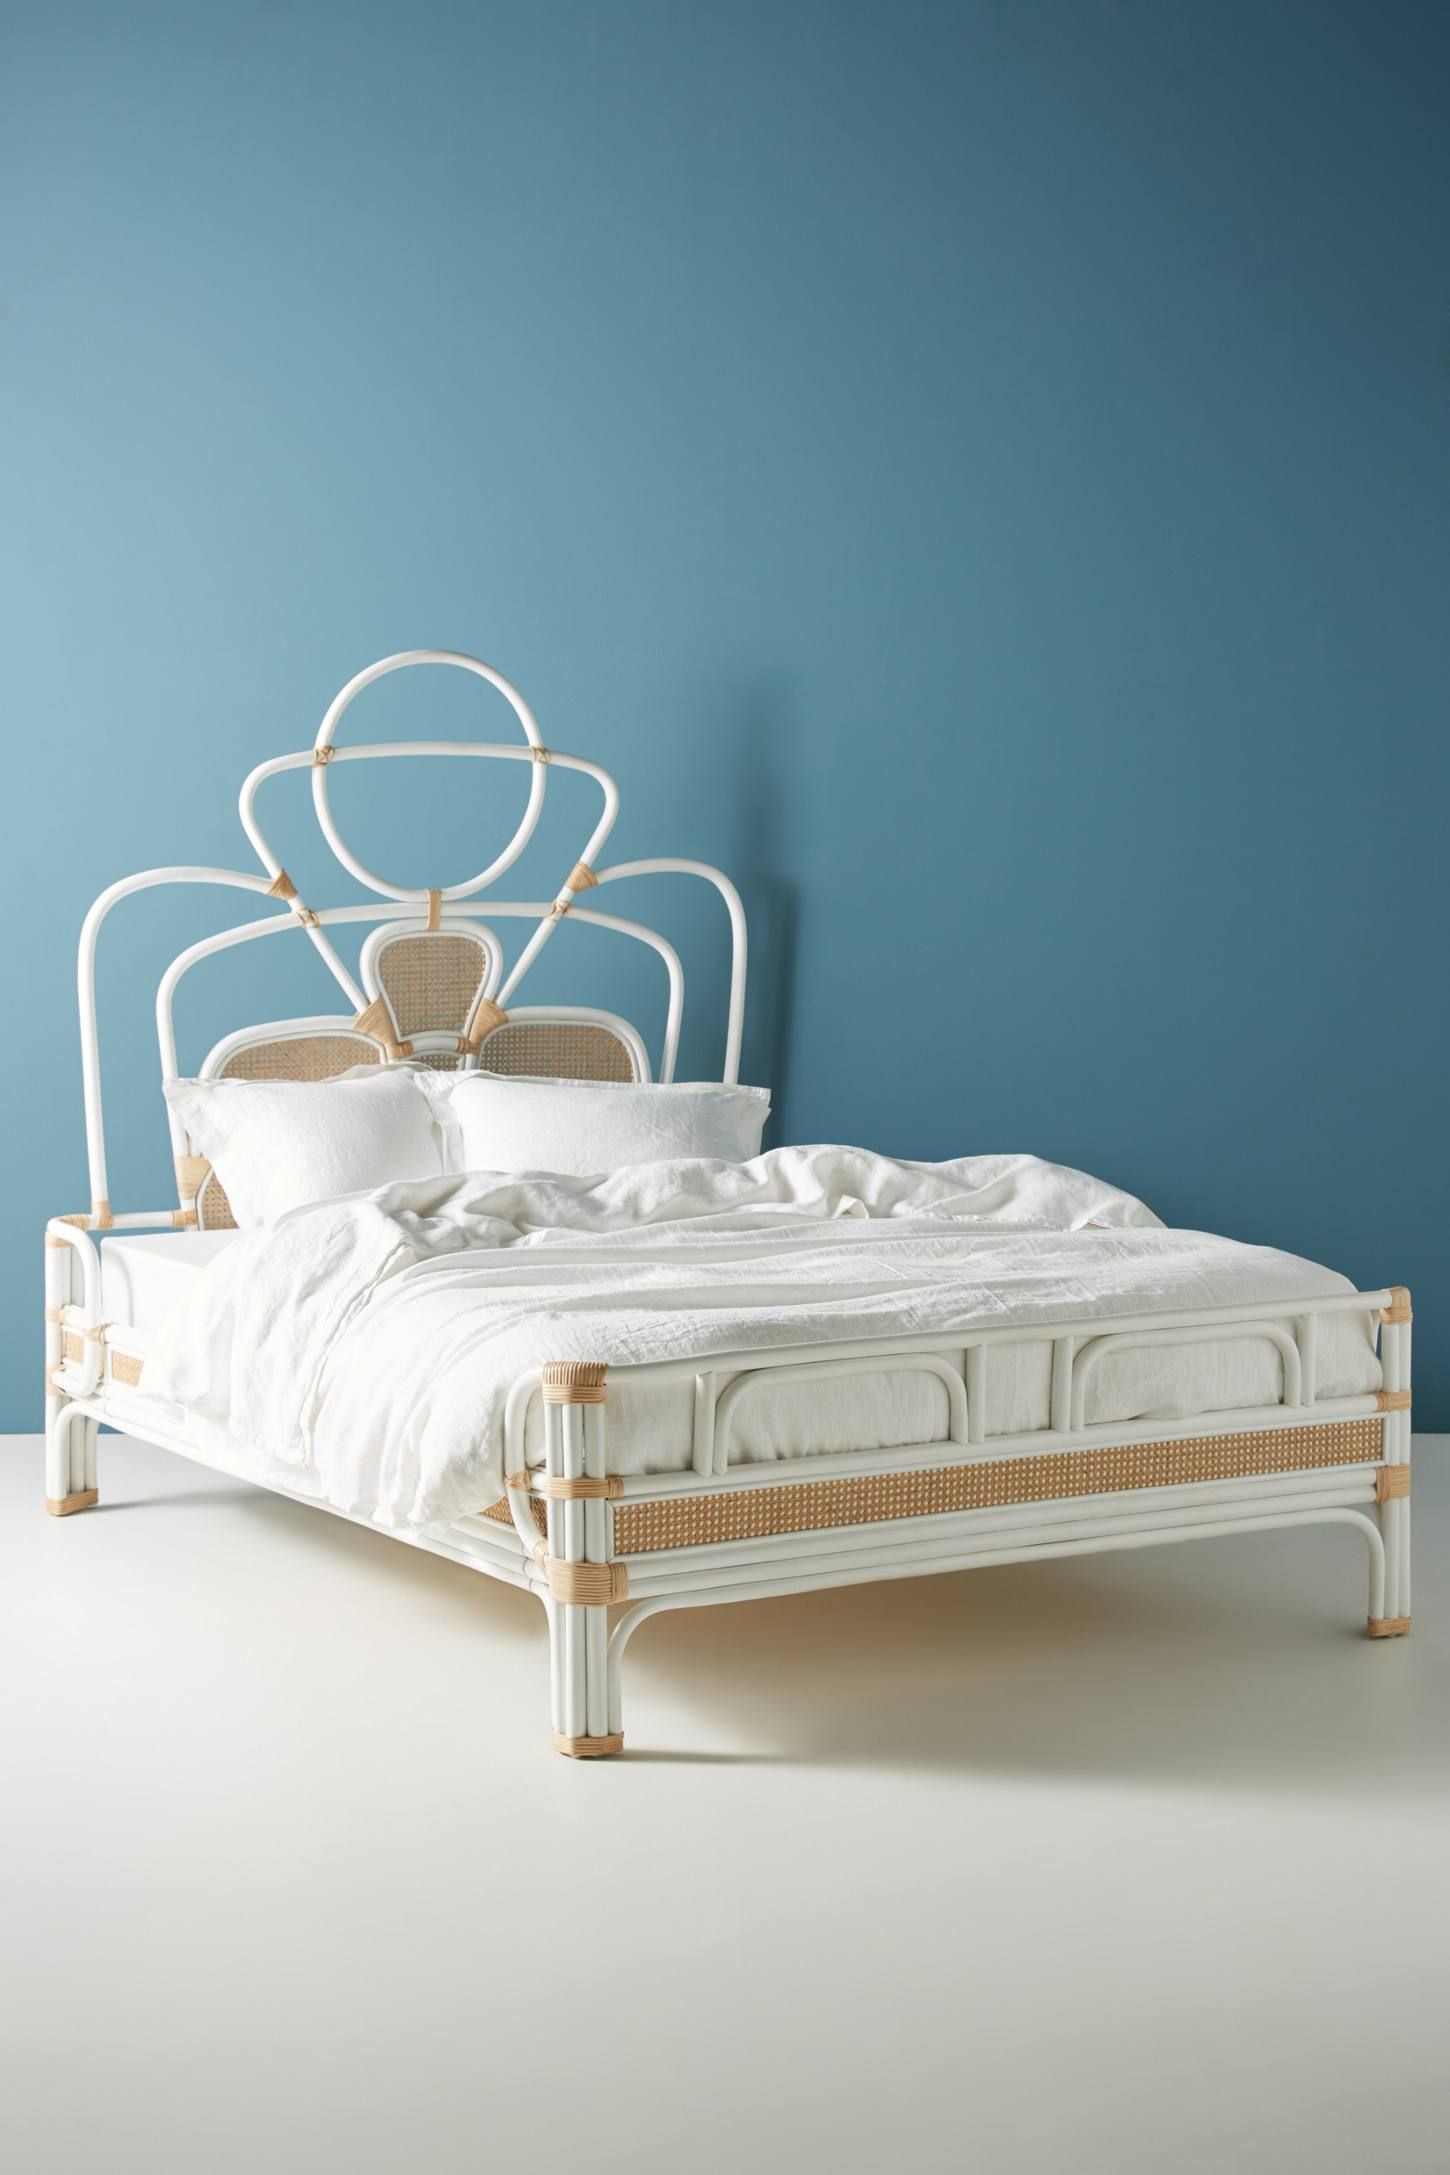 Caterina Chair In 2019 Bed Anthropologie Bedding Furniture